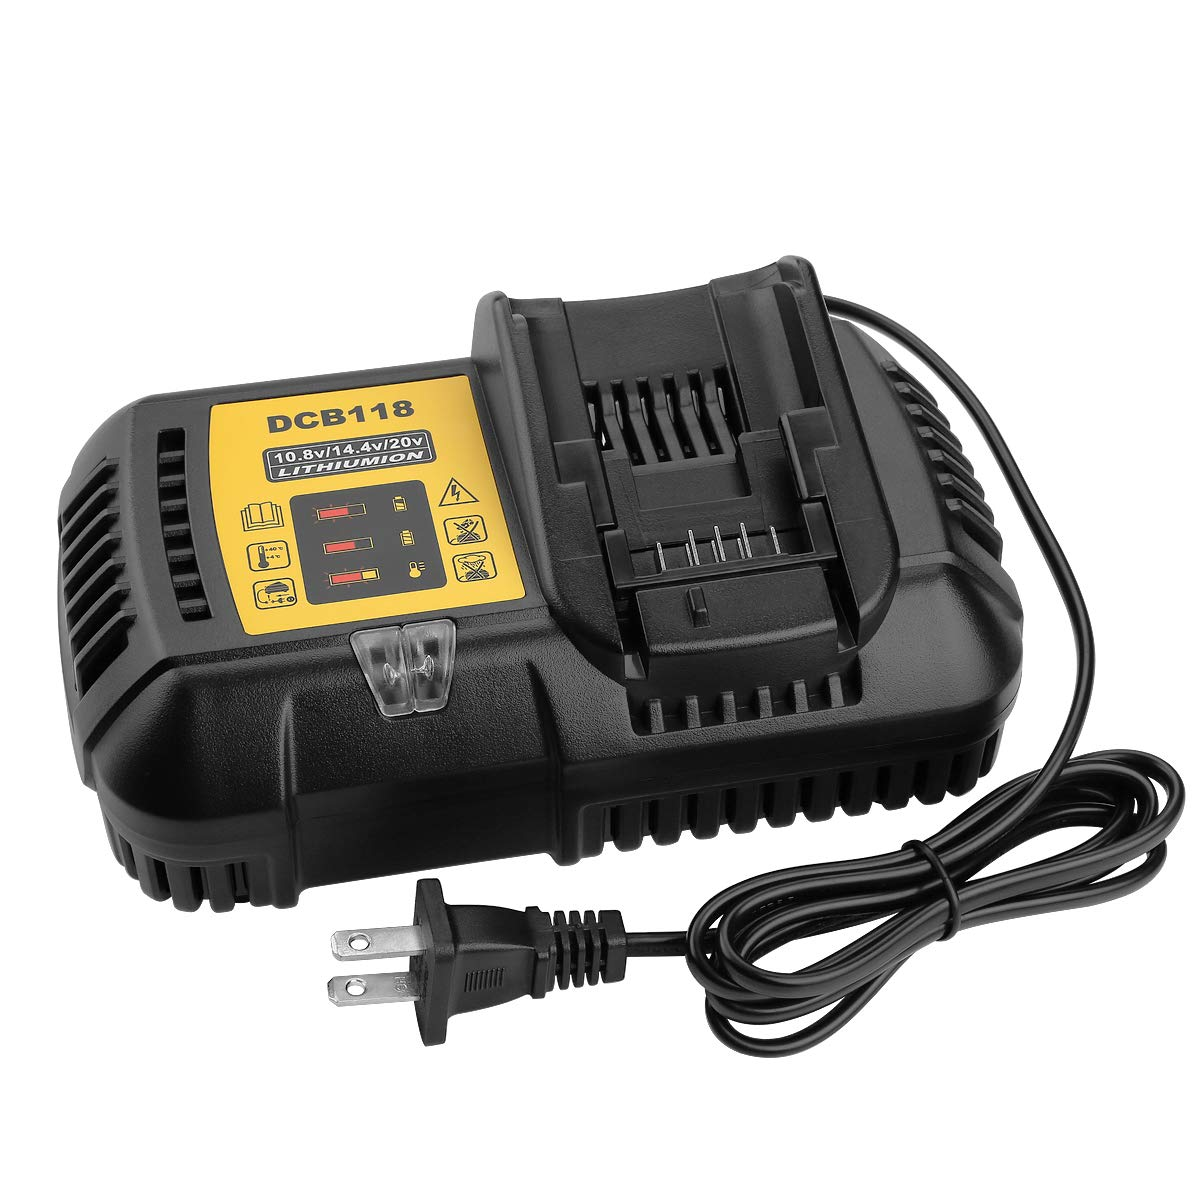 Energup 10.8V 14.4V 20V Fast Battery Charger DCB118 4.5A, Fit for Dewalt Lithium-Ion Battery DCB205 DCB206 DCB203BT DCB204BT DCB127, Replace DCB101 DCB102 DCB112 DCB115